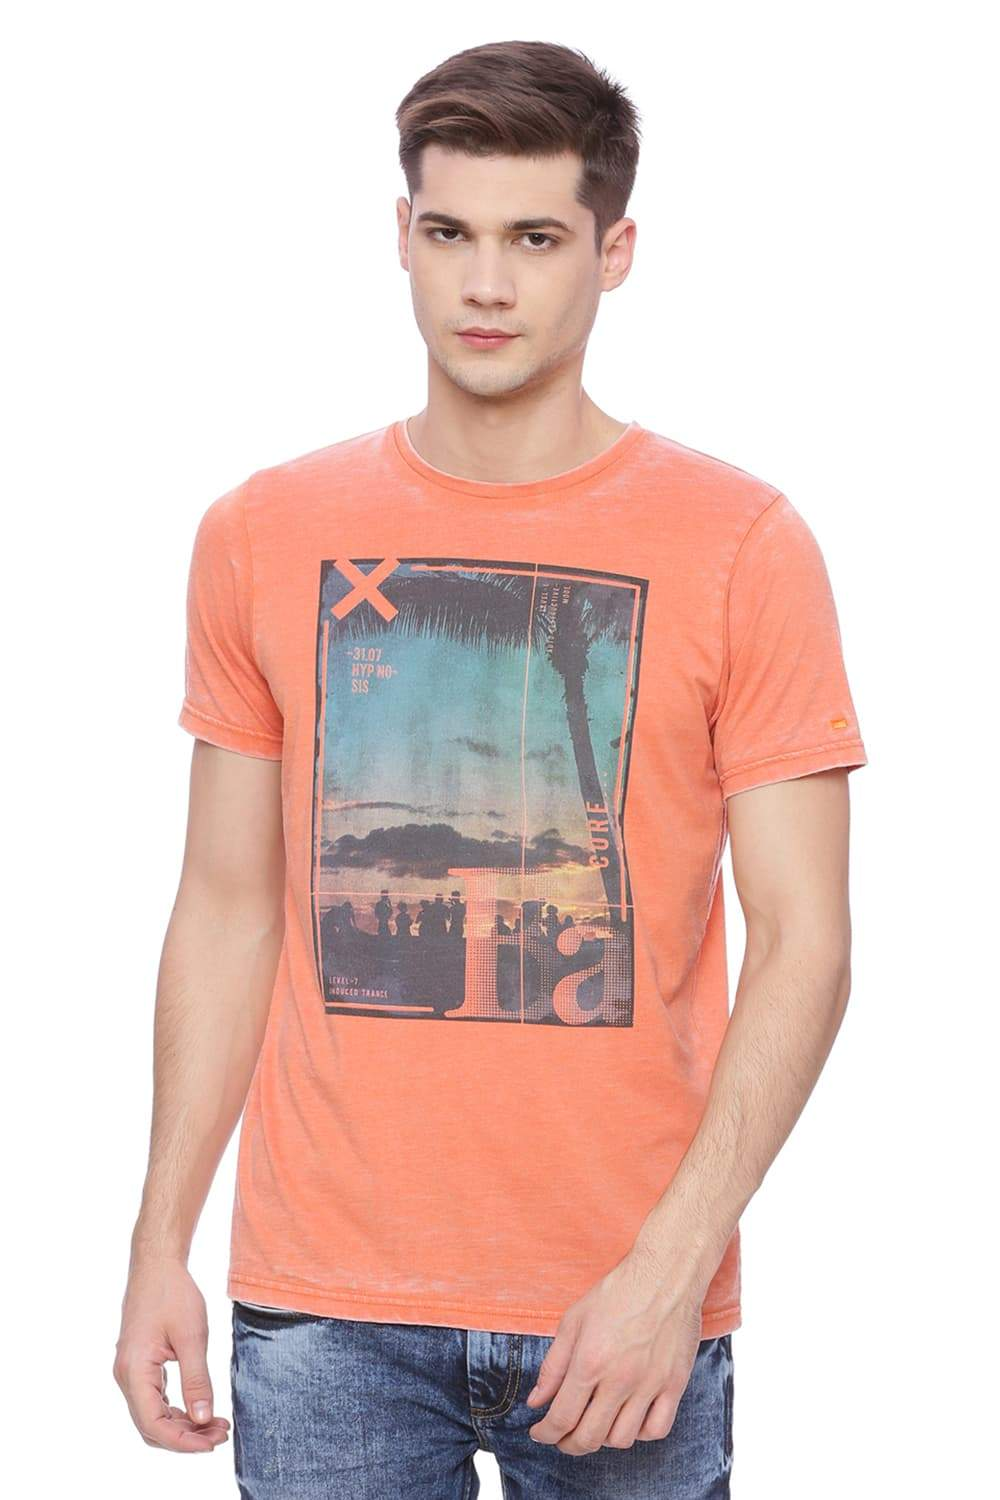 BASICS MUSCLE FIT TANGERINE ORANGE CREW NECK T SHIRT-18BTS37844